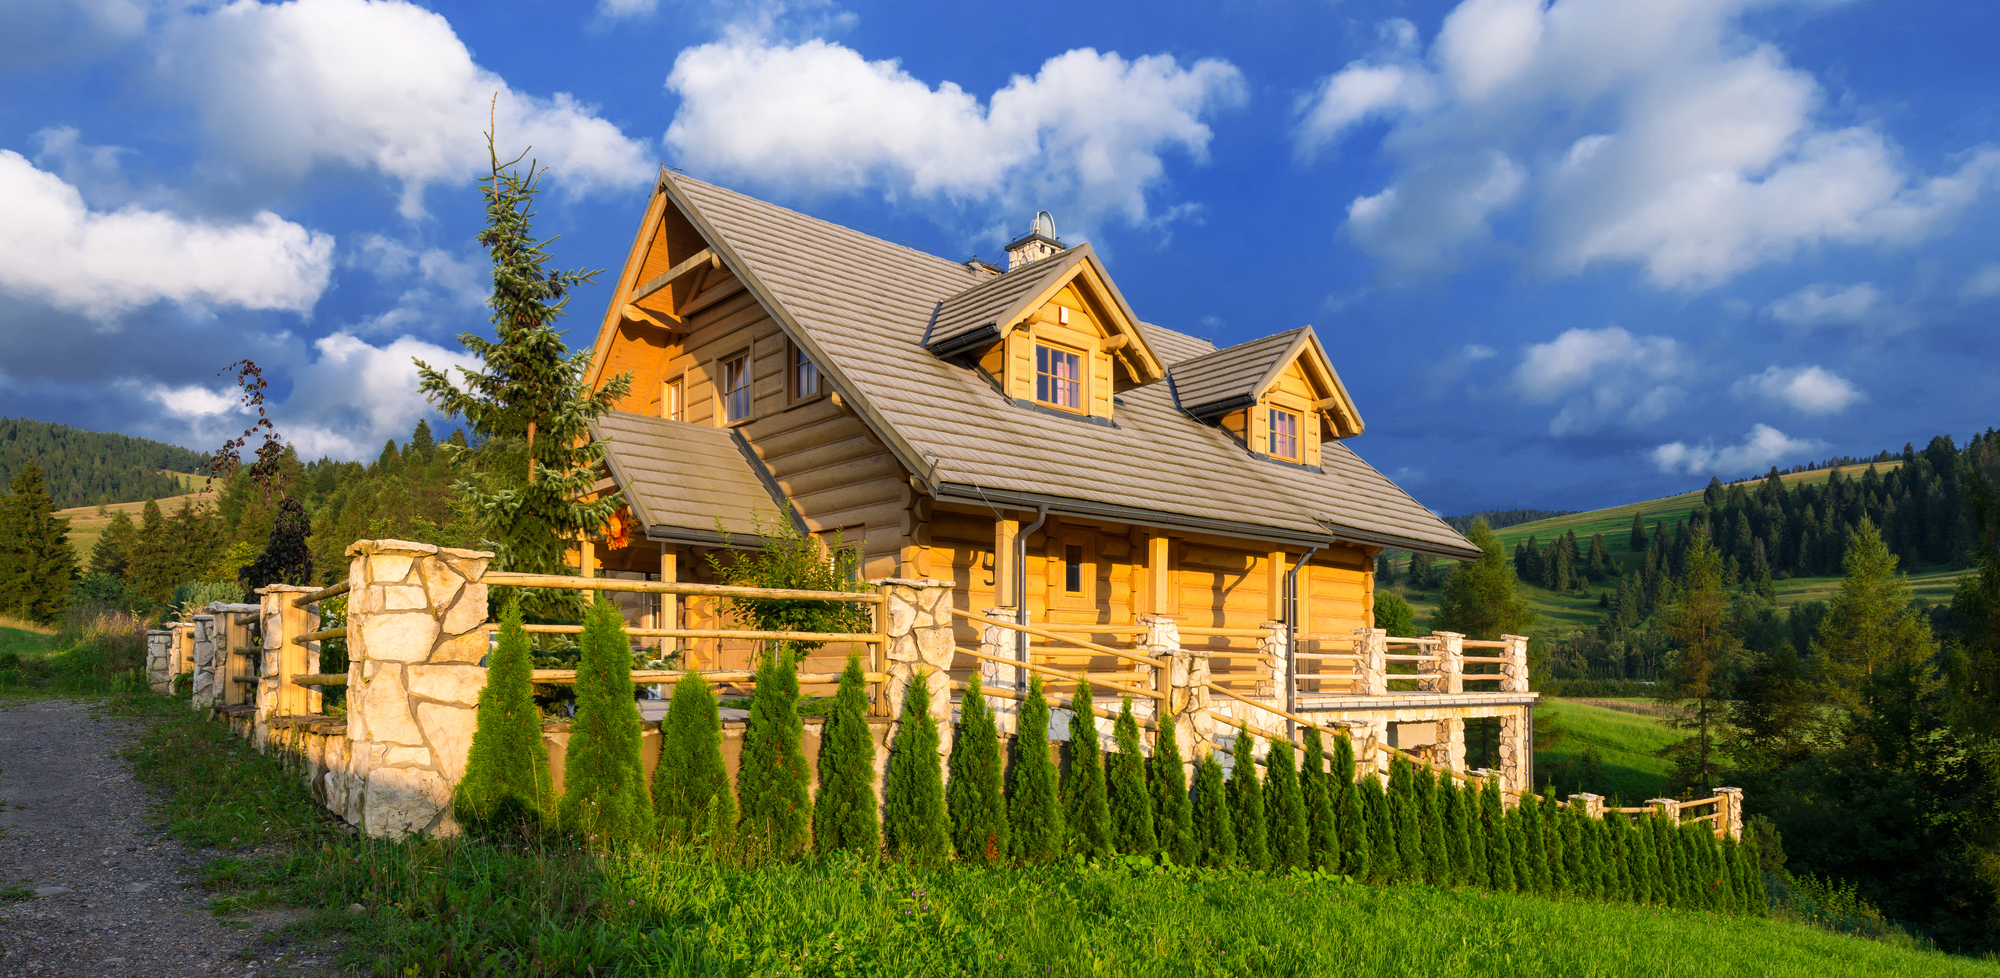 Traditional wooden mountain house built from wood logs  seen during a home inspection